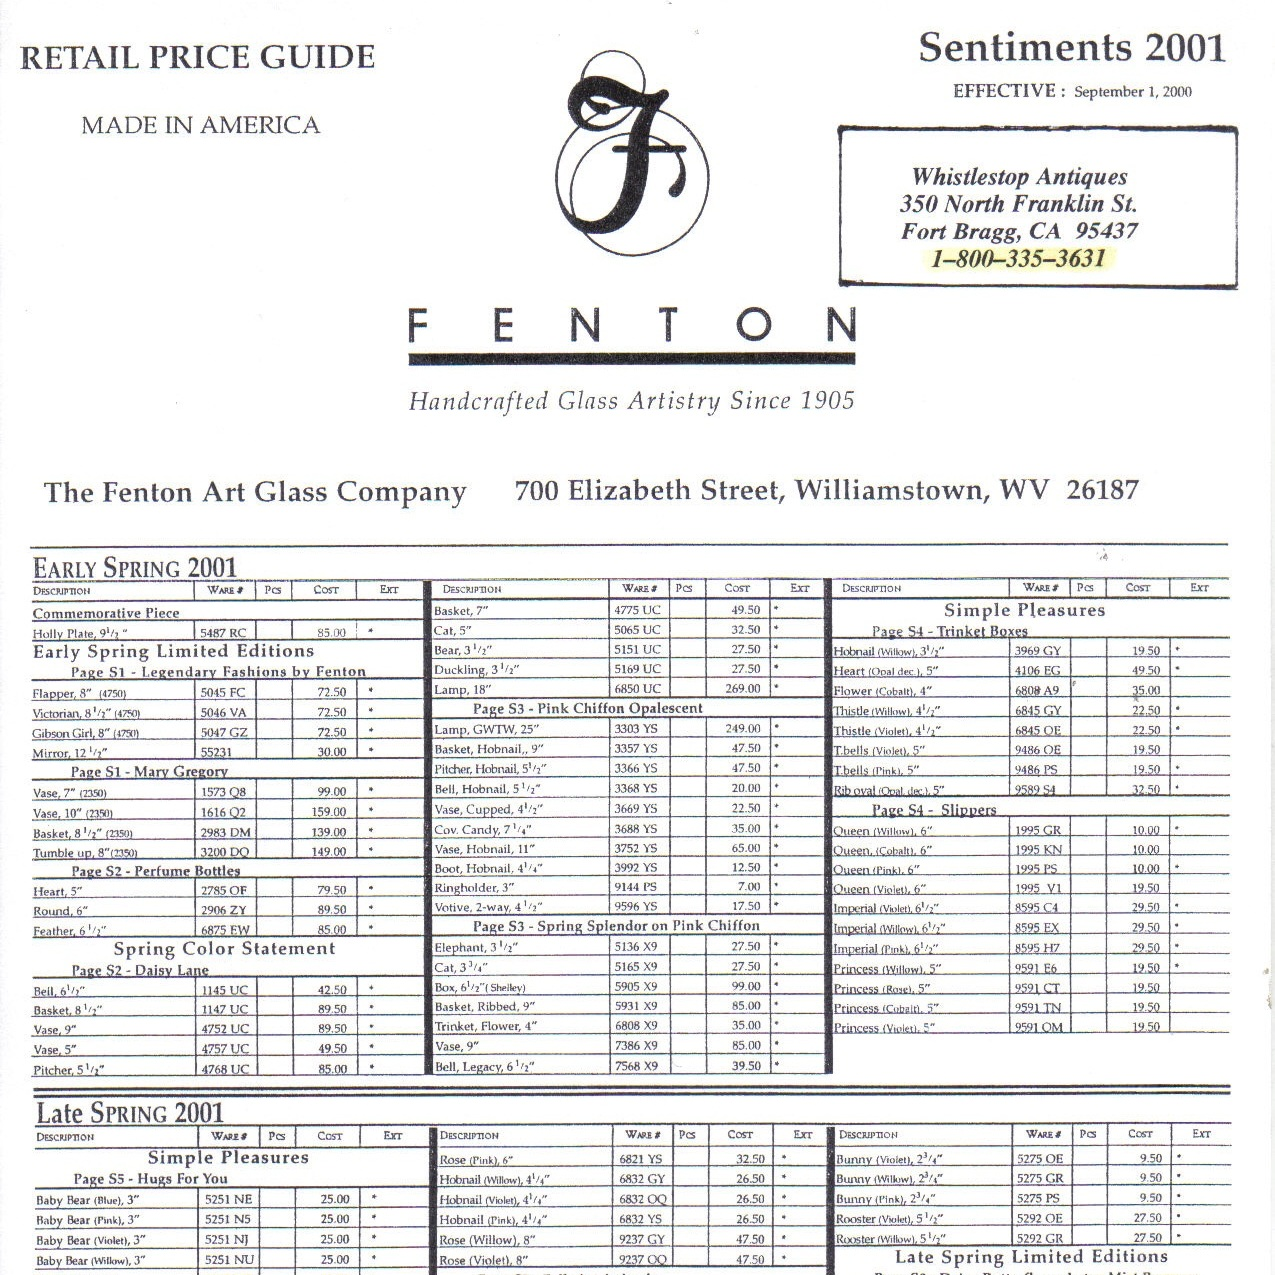 2001 Sentiments Price Guide